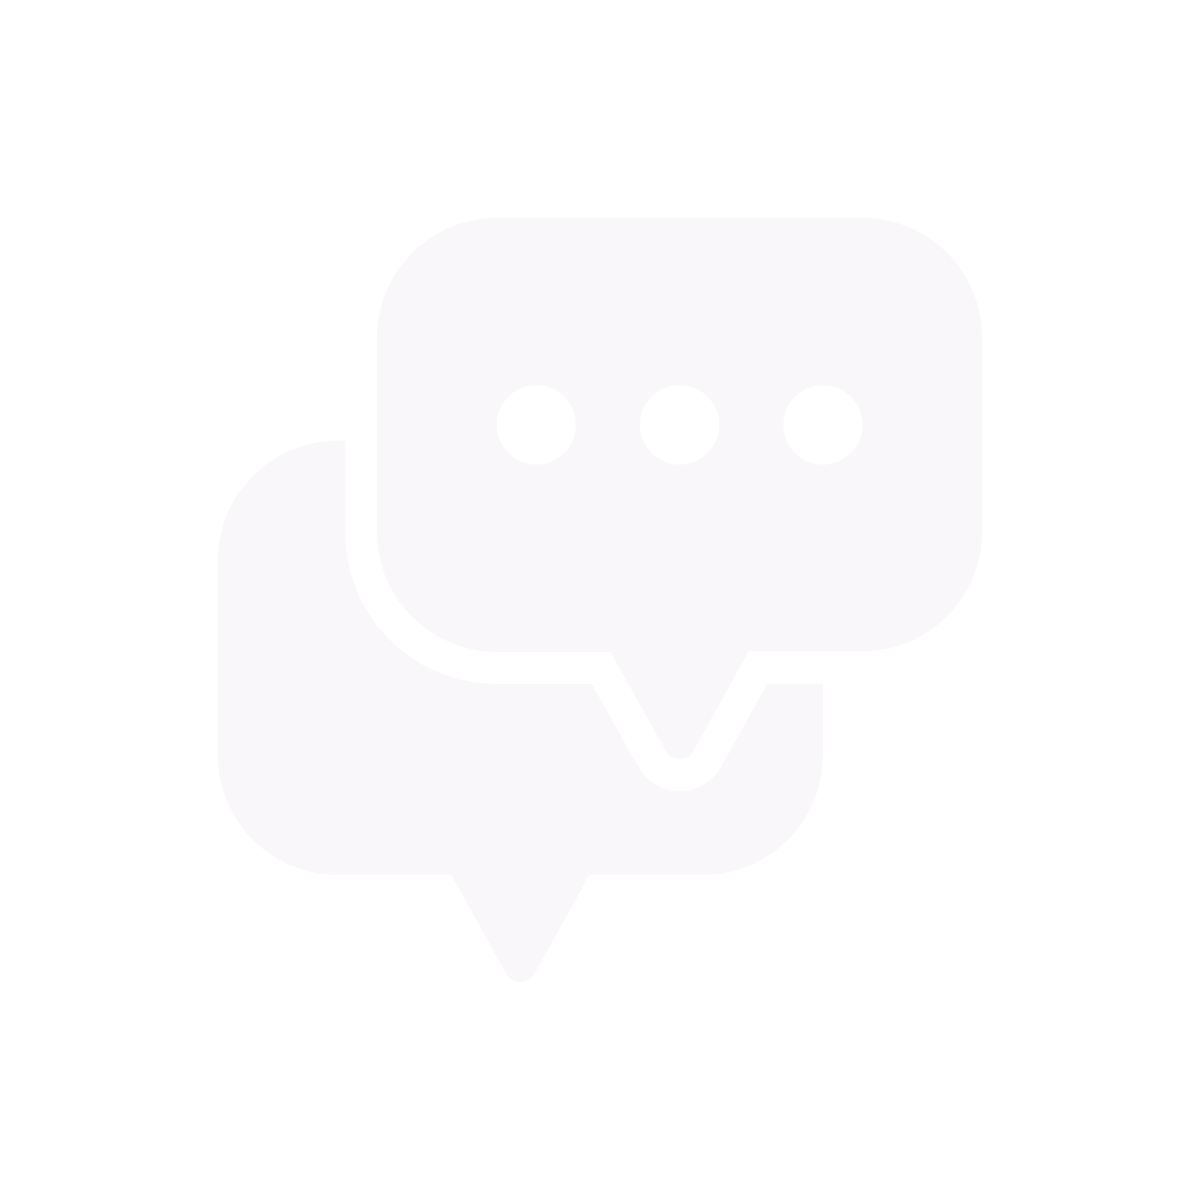 noun_dialogue_1782585_purple_3percent.pn